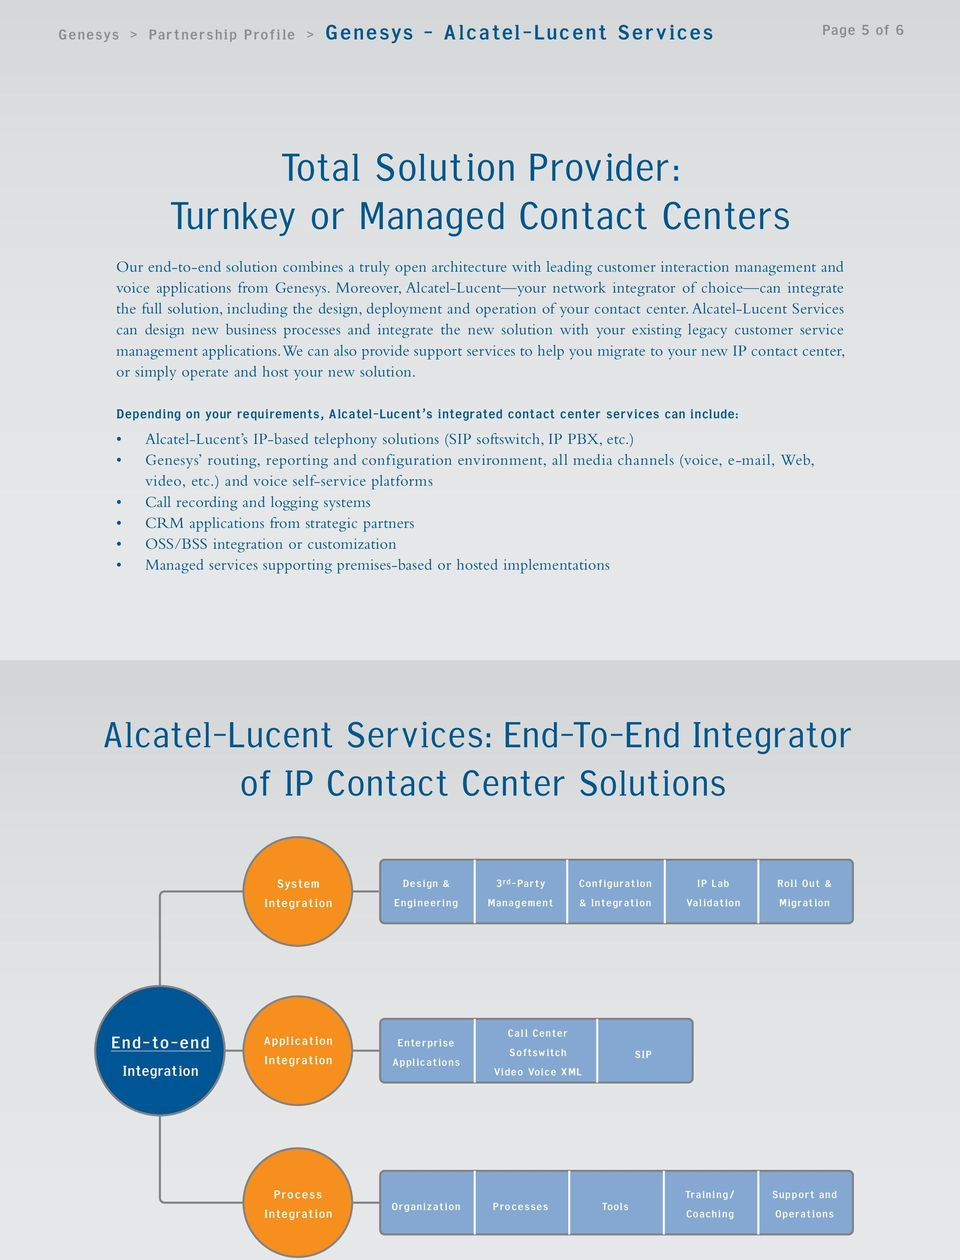 Alcatel-Lucent Services can design new business processes and integrate the new solution with your existing legacy customer service management applications.